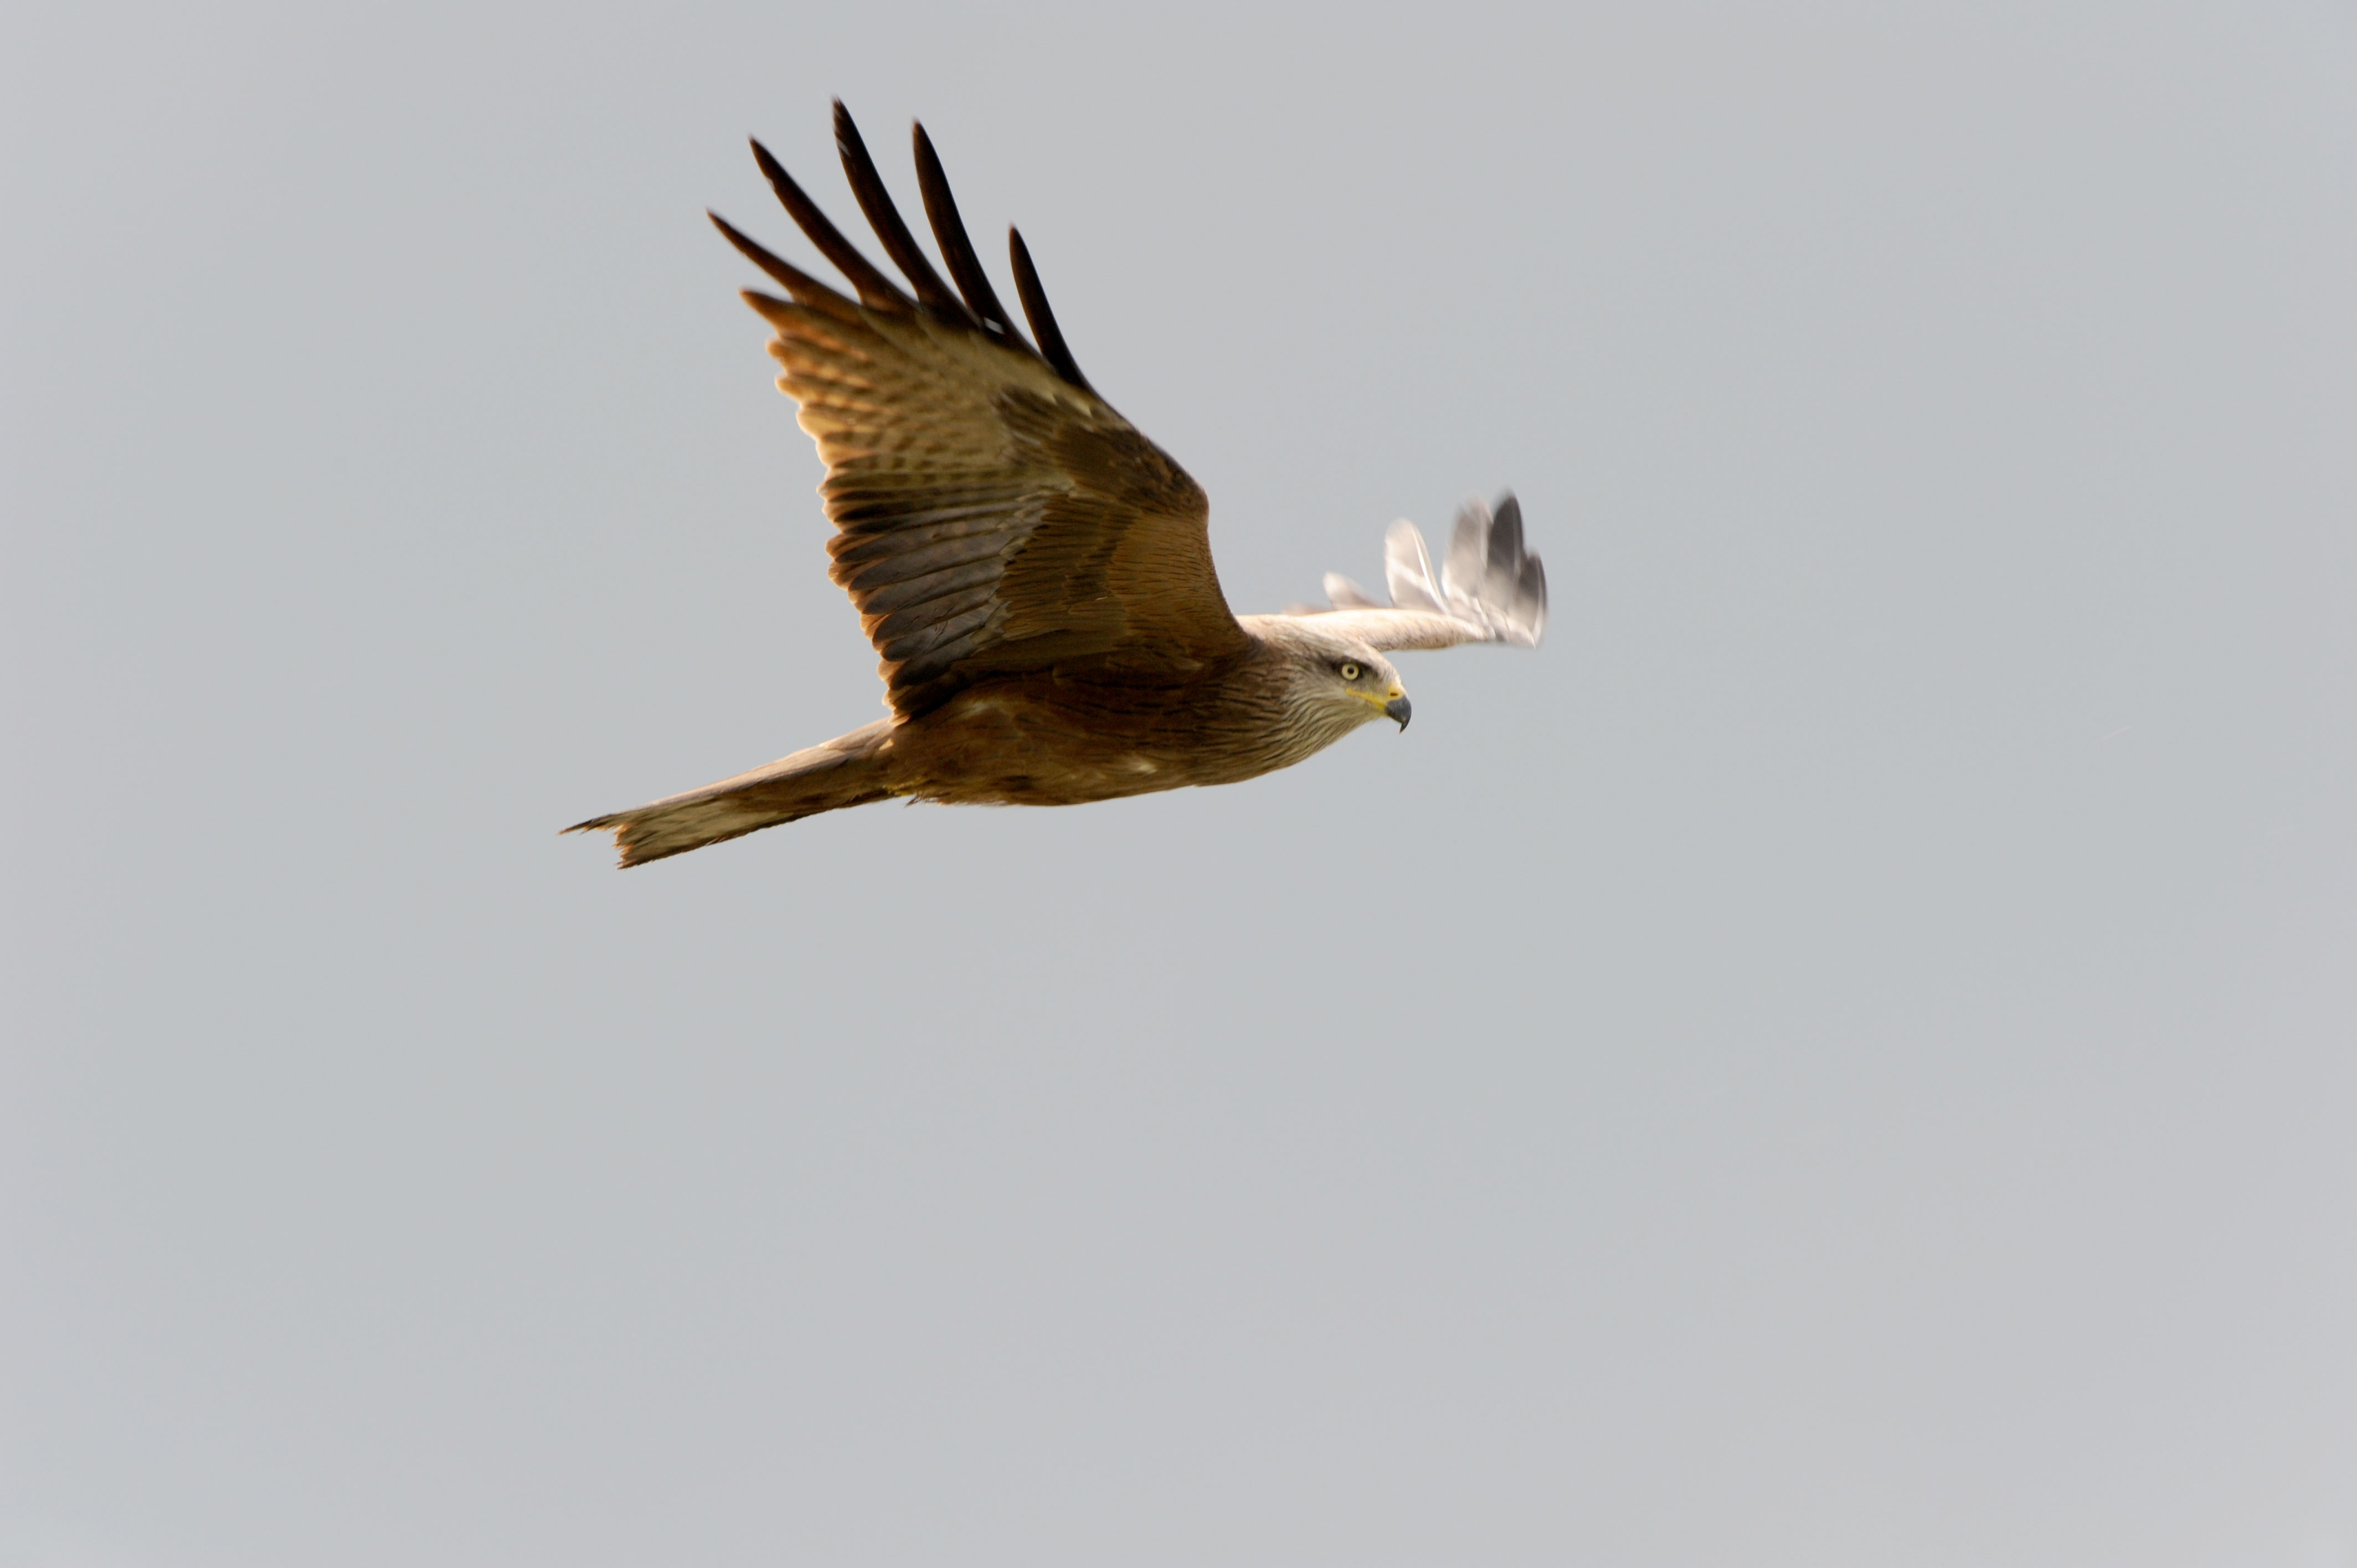 Kite, red (Milvus milvus),DE ©Johannes Ratermann